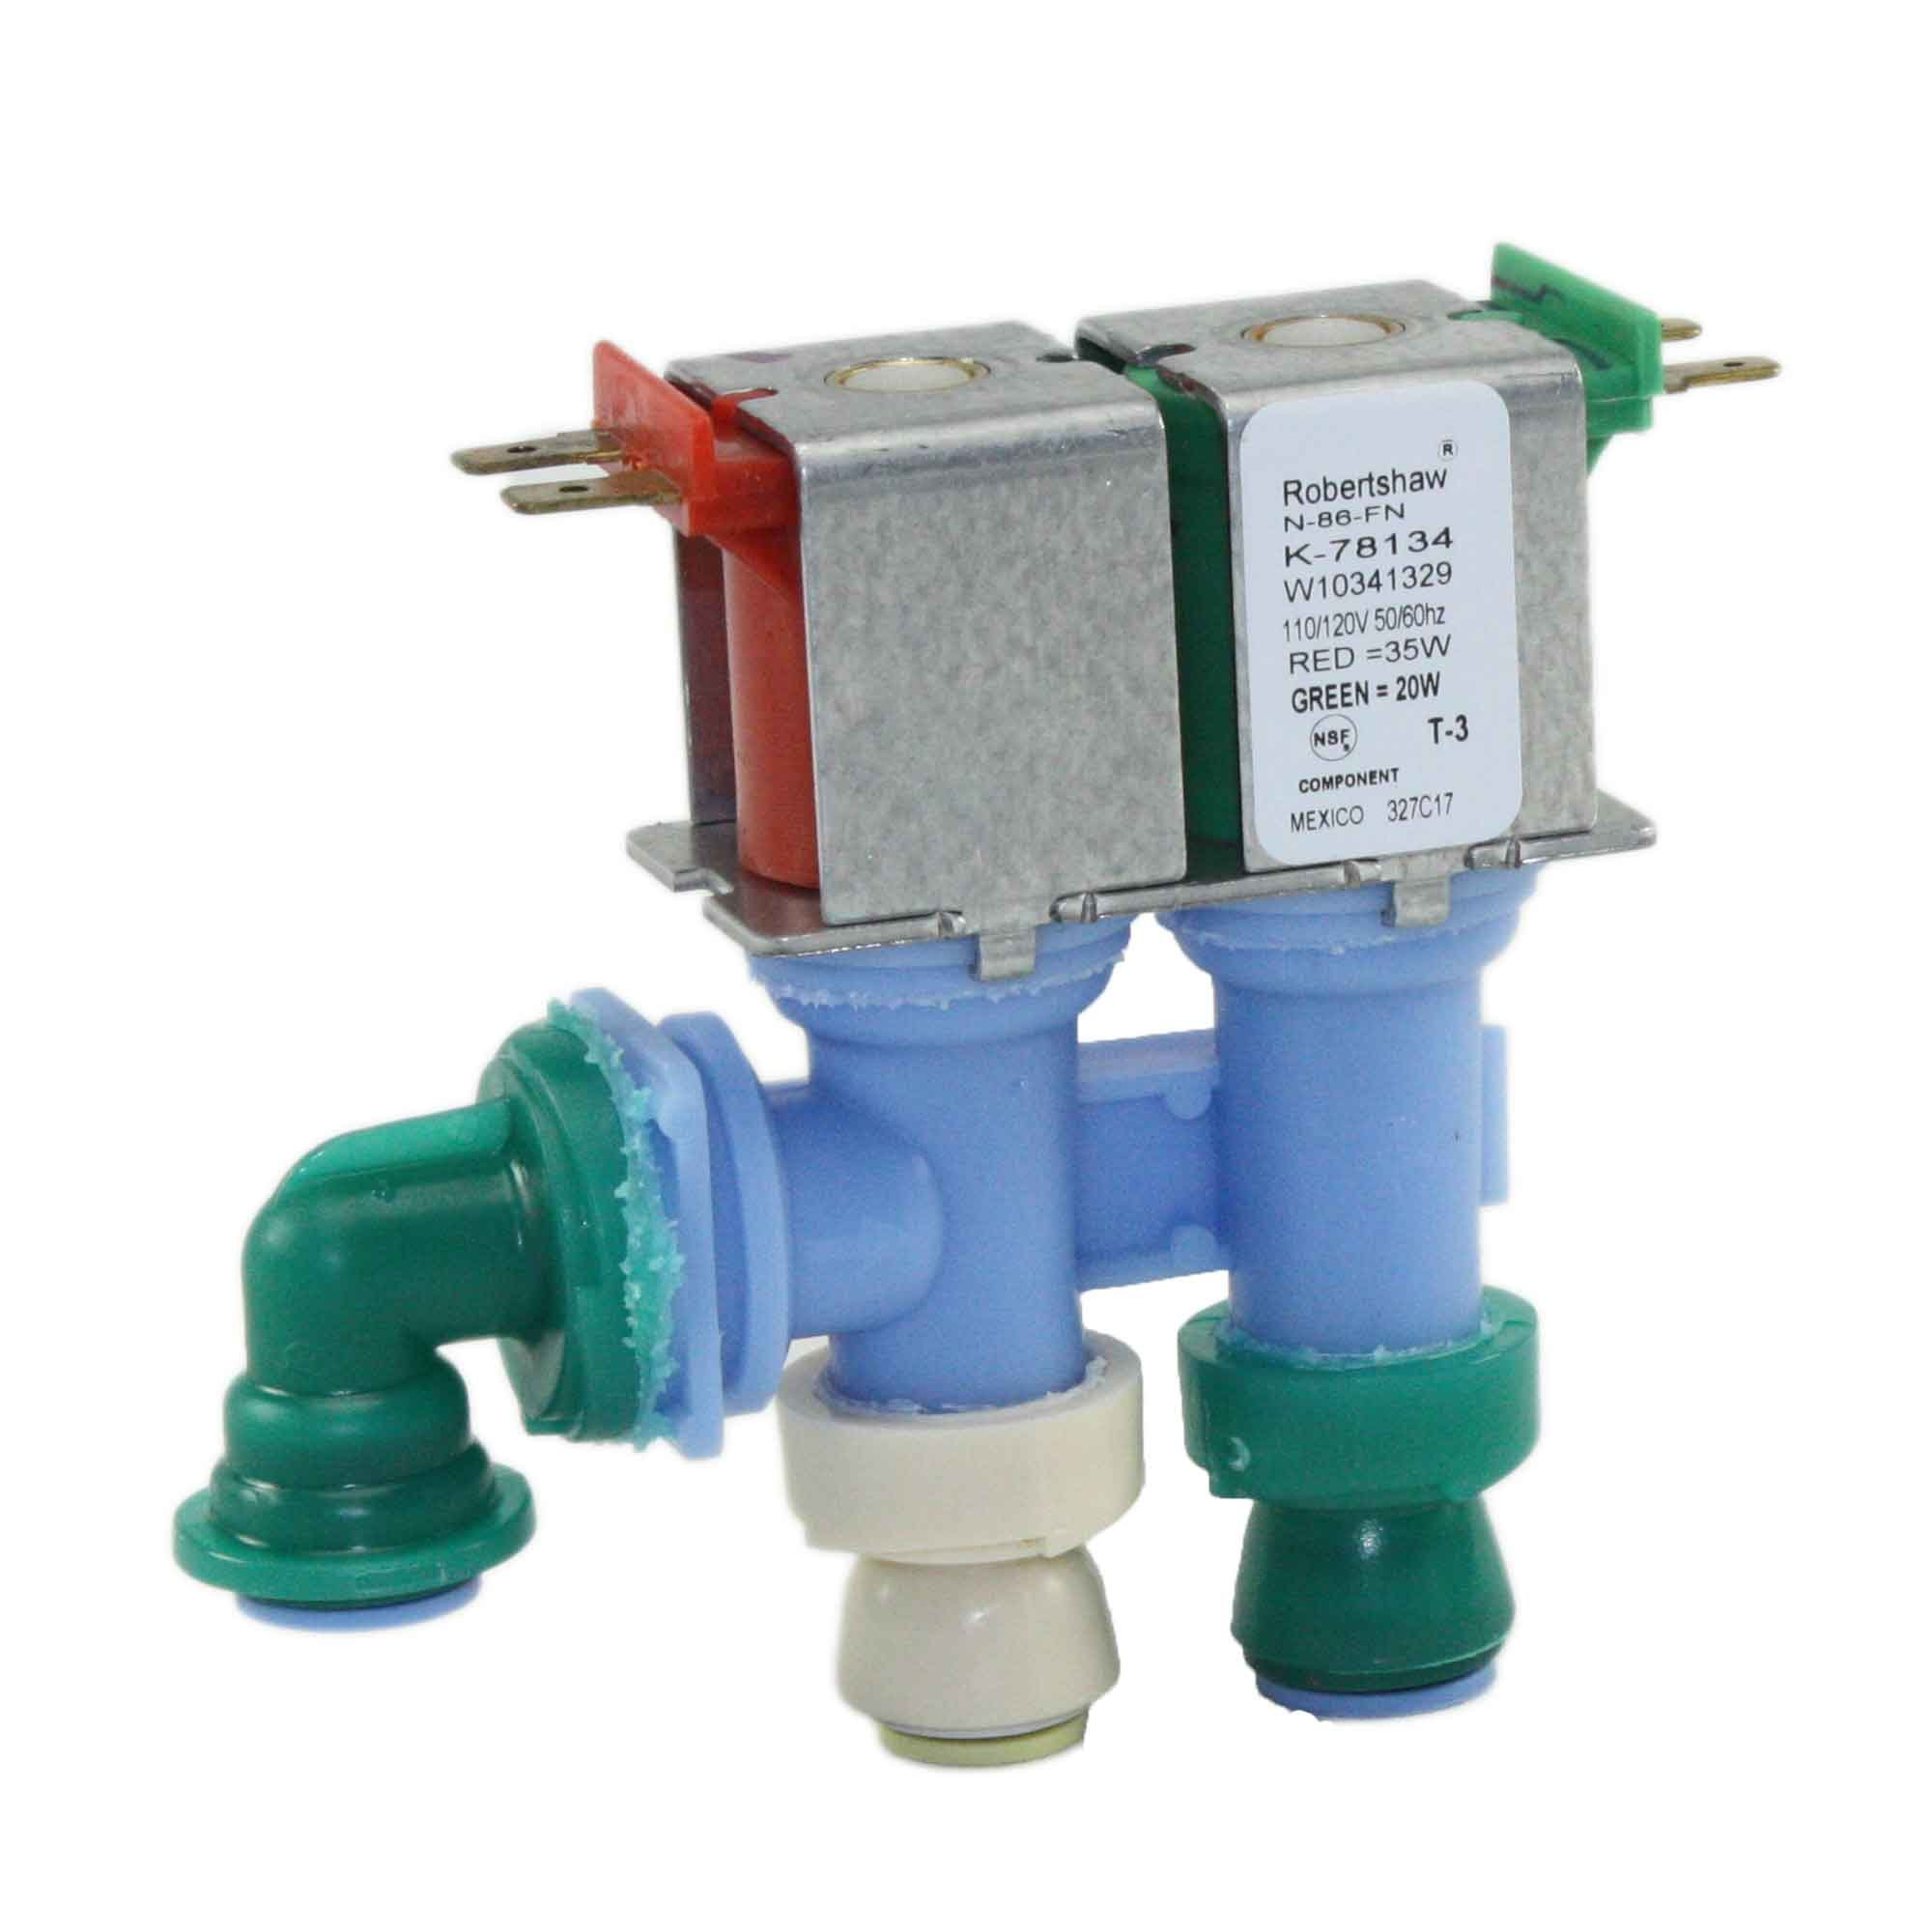 Supplying Demand W10341329 Refrigerator Dual Water Valve Works With AP6019940 by Supplying Demand (Image #1)